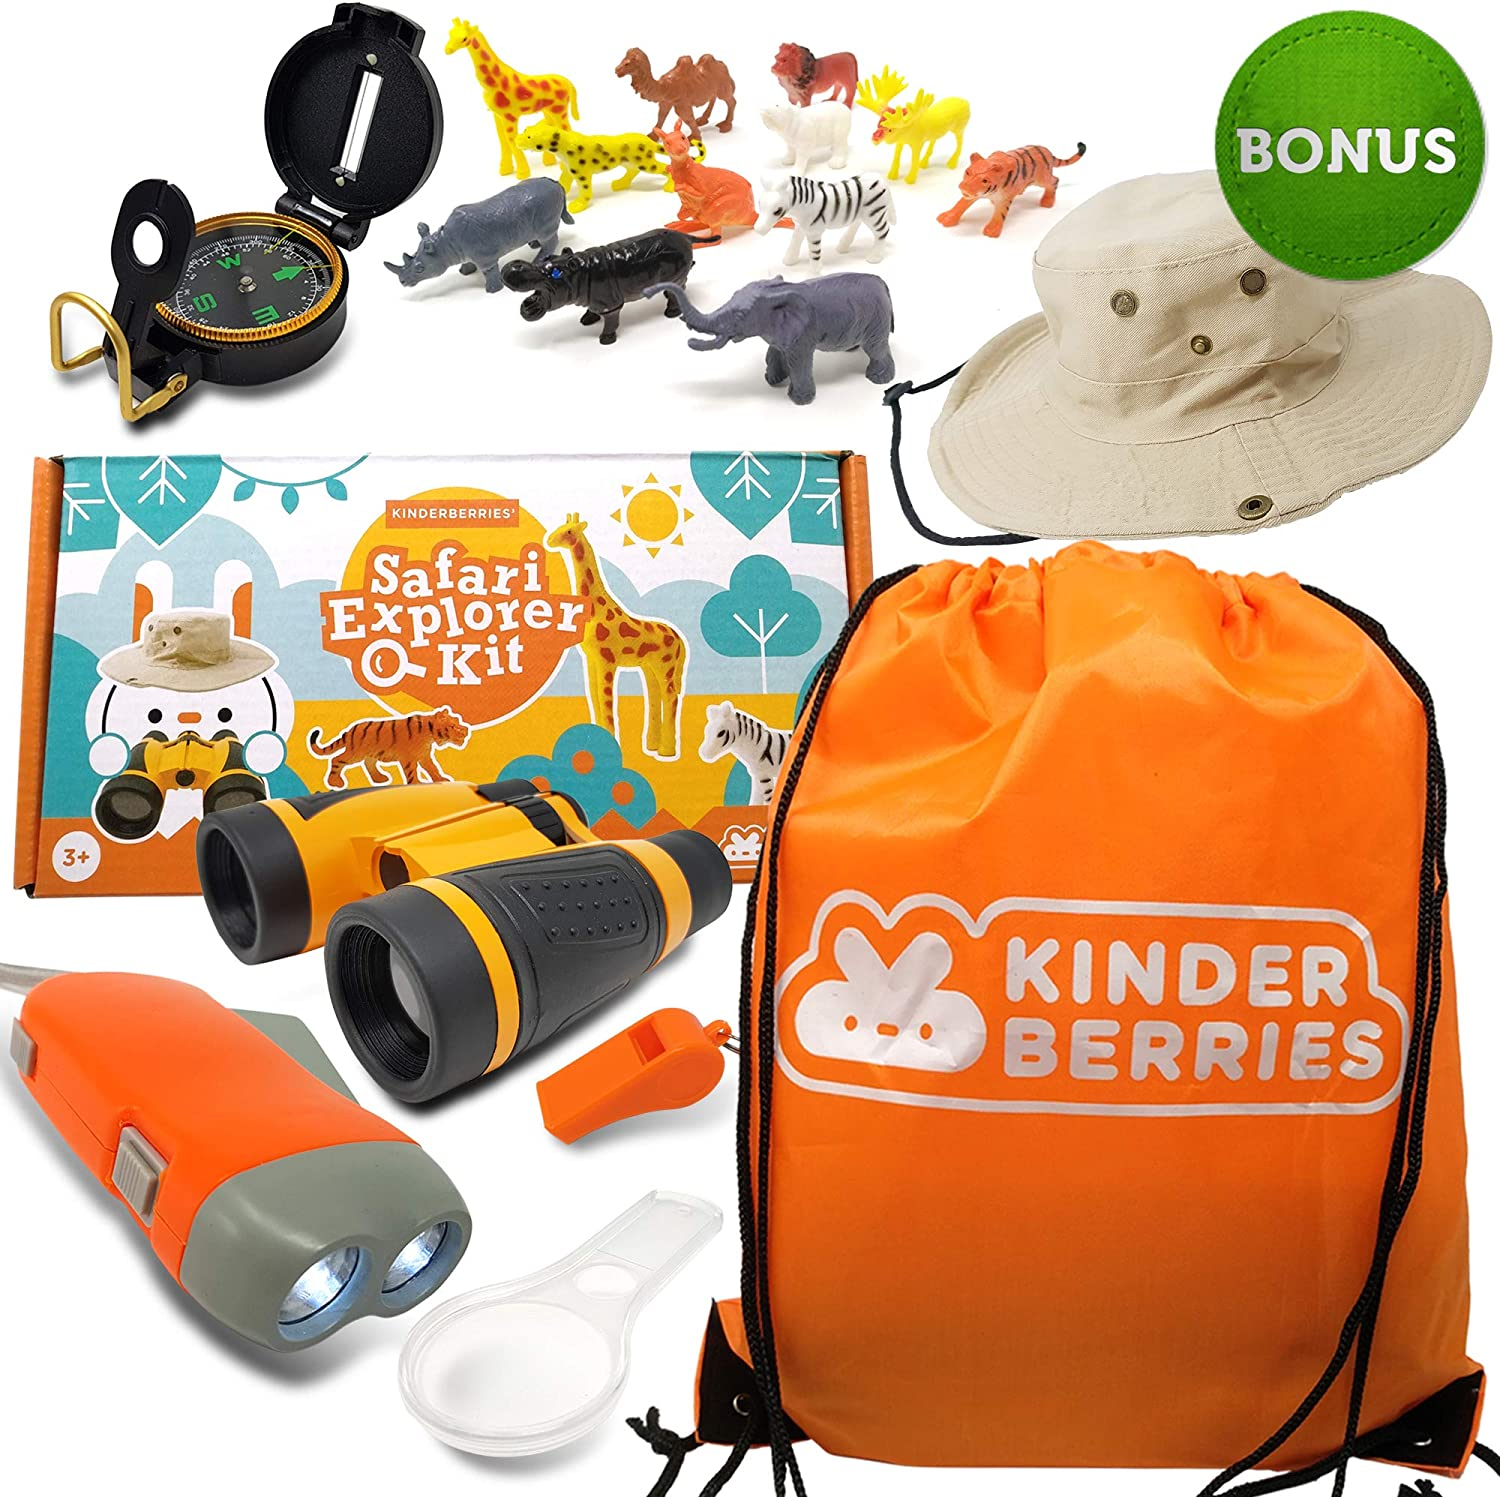 KinderBerries Kids Explorer Kit - Outdoor Binoculars 12pcs Plastic Animals Hand Crank Flashlight Safari Boonie Hat Camping Gear Magnifying Glass Compass - Educational Toddler Toys for Kids